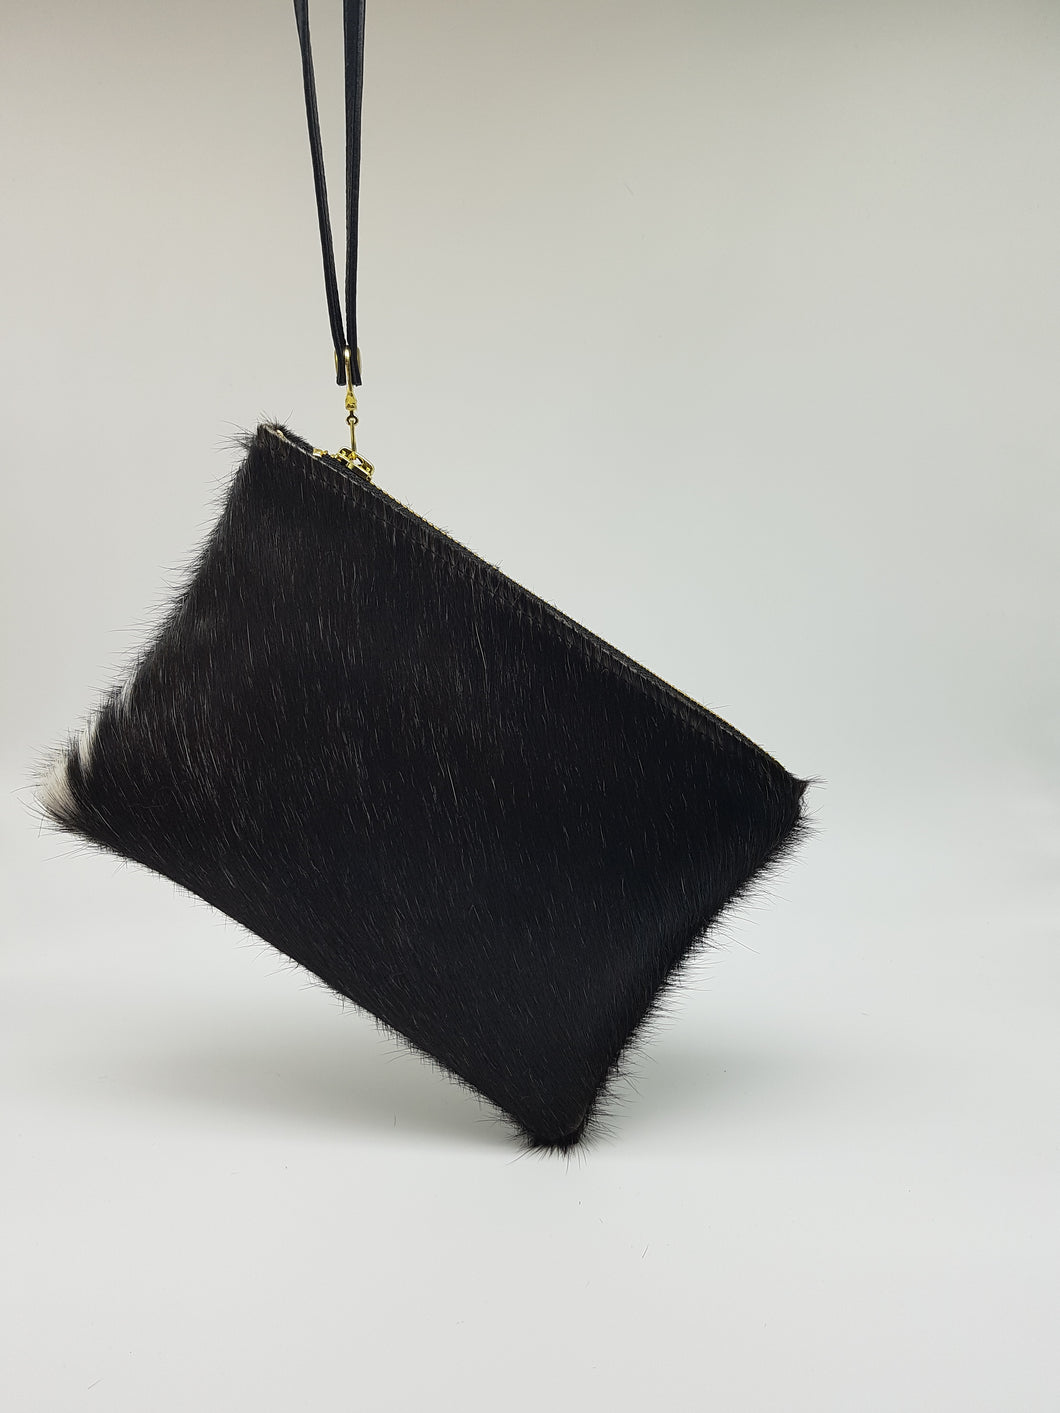 clutch leather handbags For sale, Crossbody leather handbags